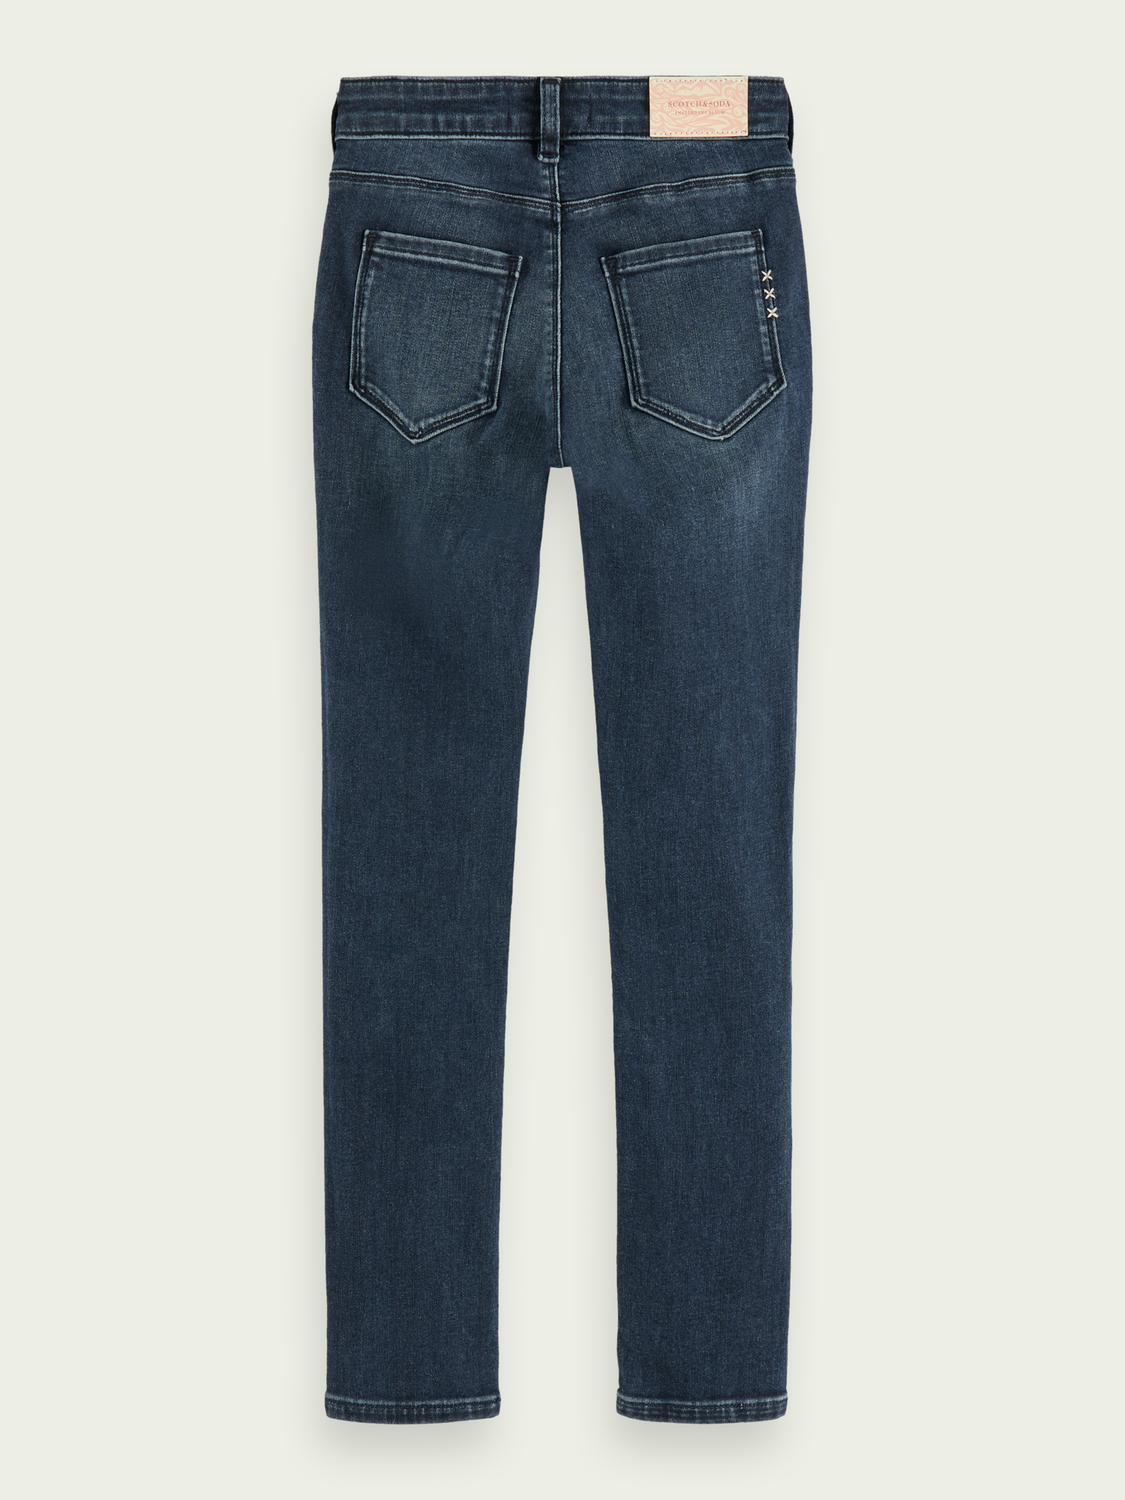 Mädchen La Charmante – Moody Blue | High-Rise Skinny Fit Jeans